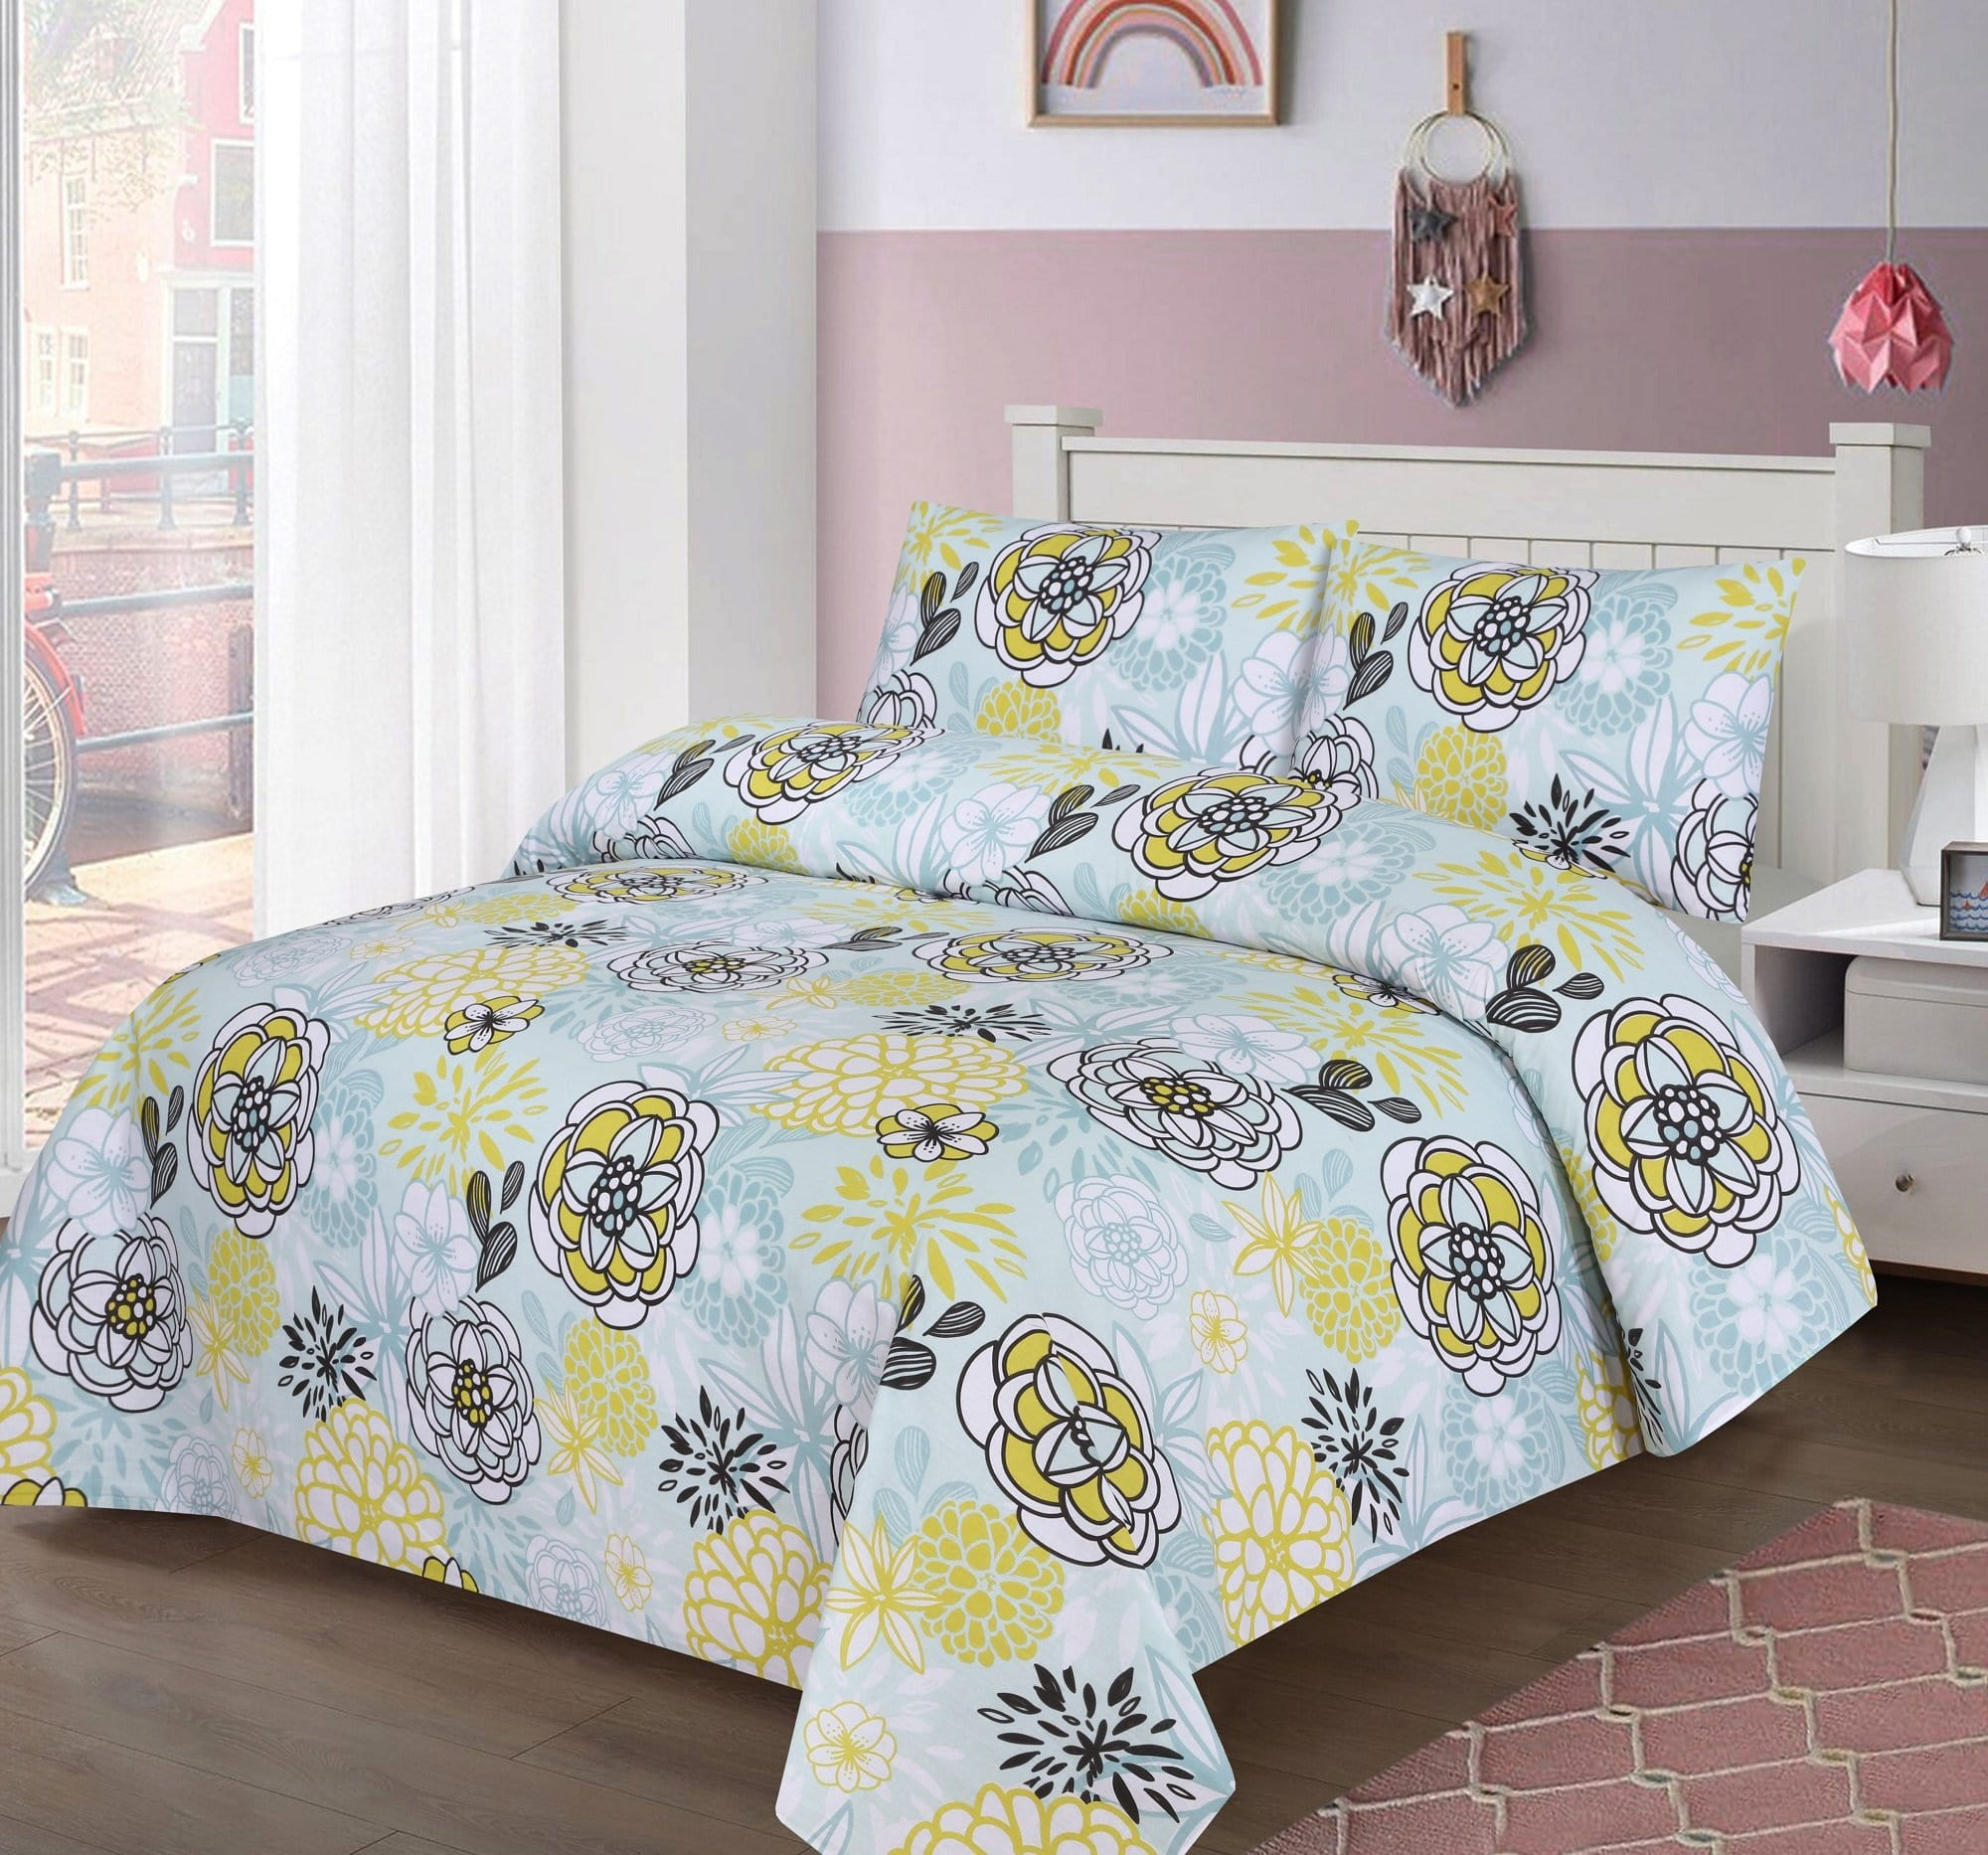 Grace D408-Cotton PC King Size Bedsheet with 2 Pillow Covers.